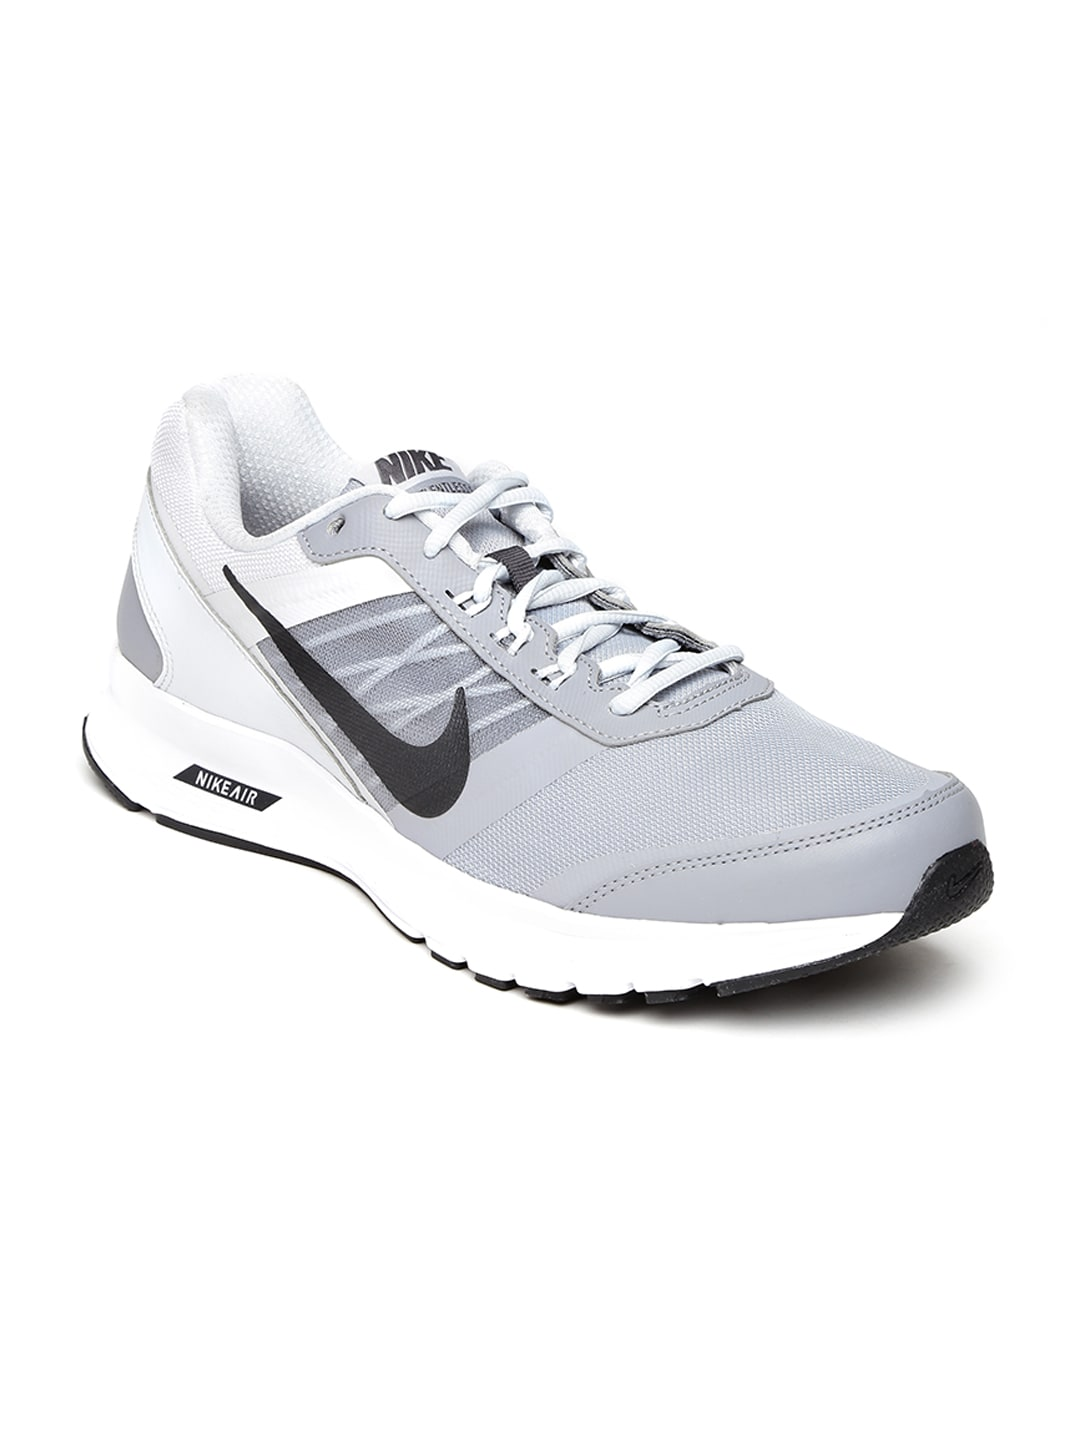 6c193e45fd2 Nike 807093-005 Men Grey Air Relentless 5 Msl Running Shoes ...